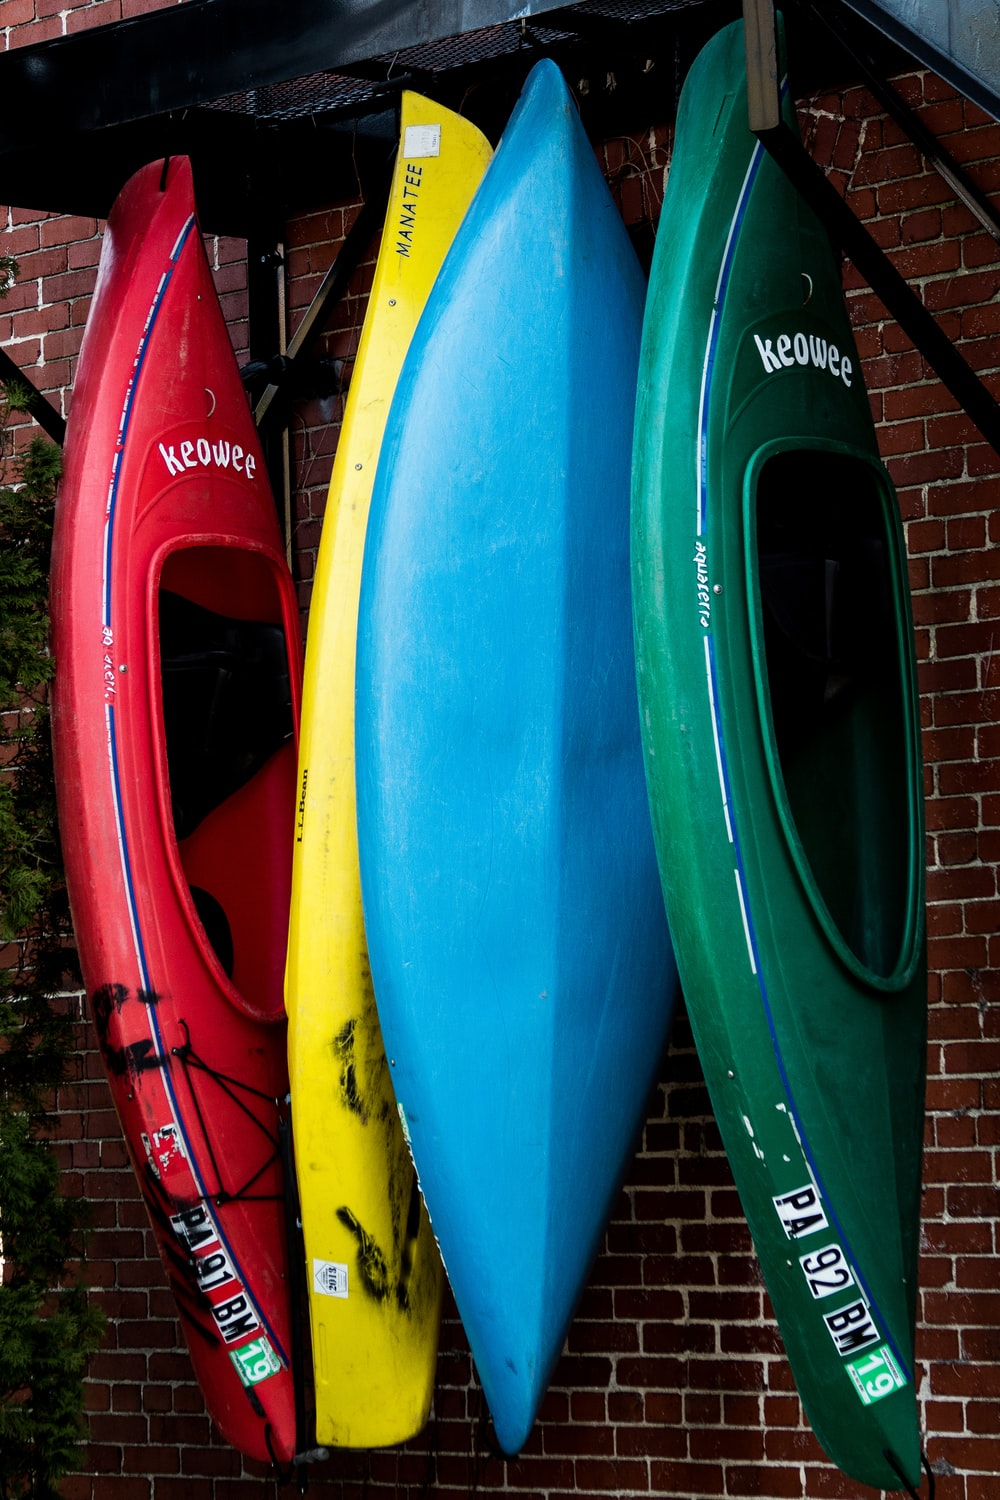 assorted-color kayak on display